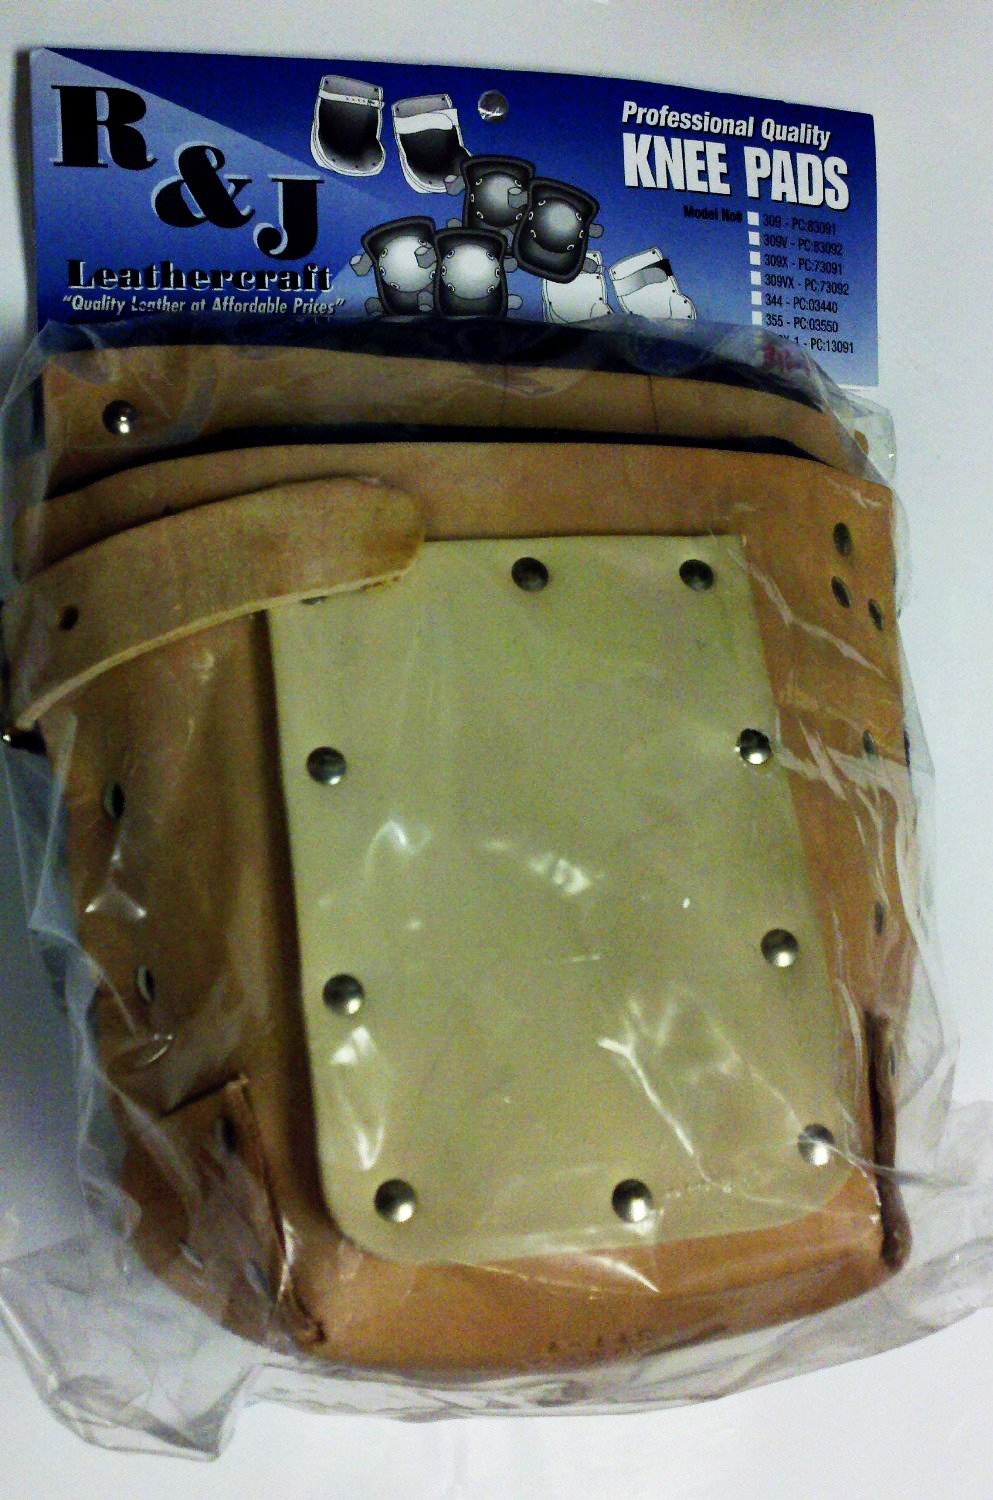 R&J Leathercraft, 311-1, Extra Heavy Duty Professional Knee Pads w/ Neolite Sole, 1 wide Leather Strap, Made in USA***** by R & J Leathercraft B00CCG7YZO